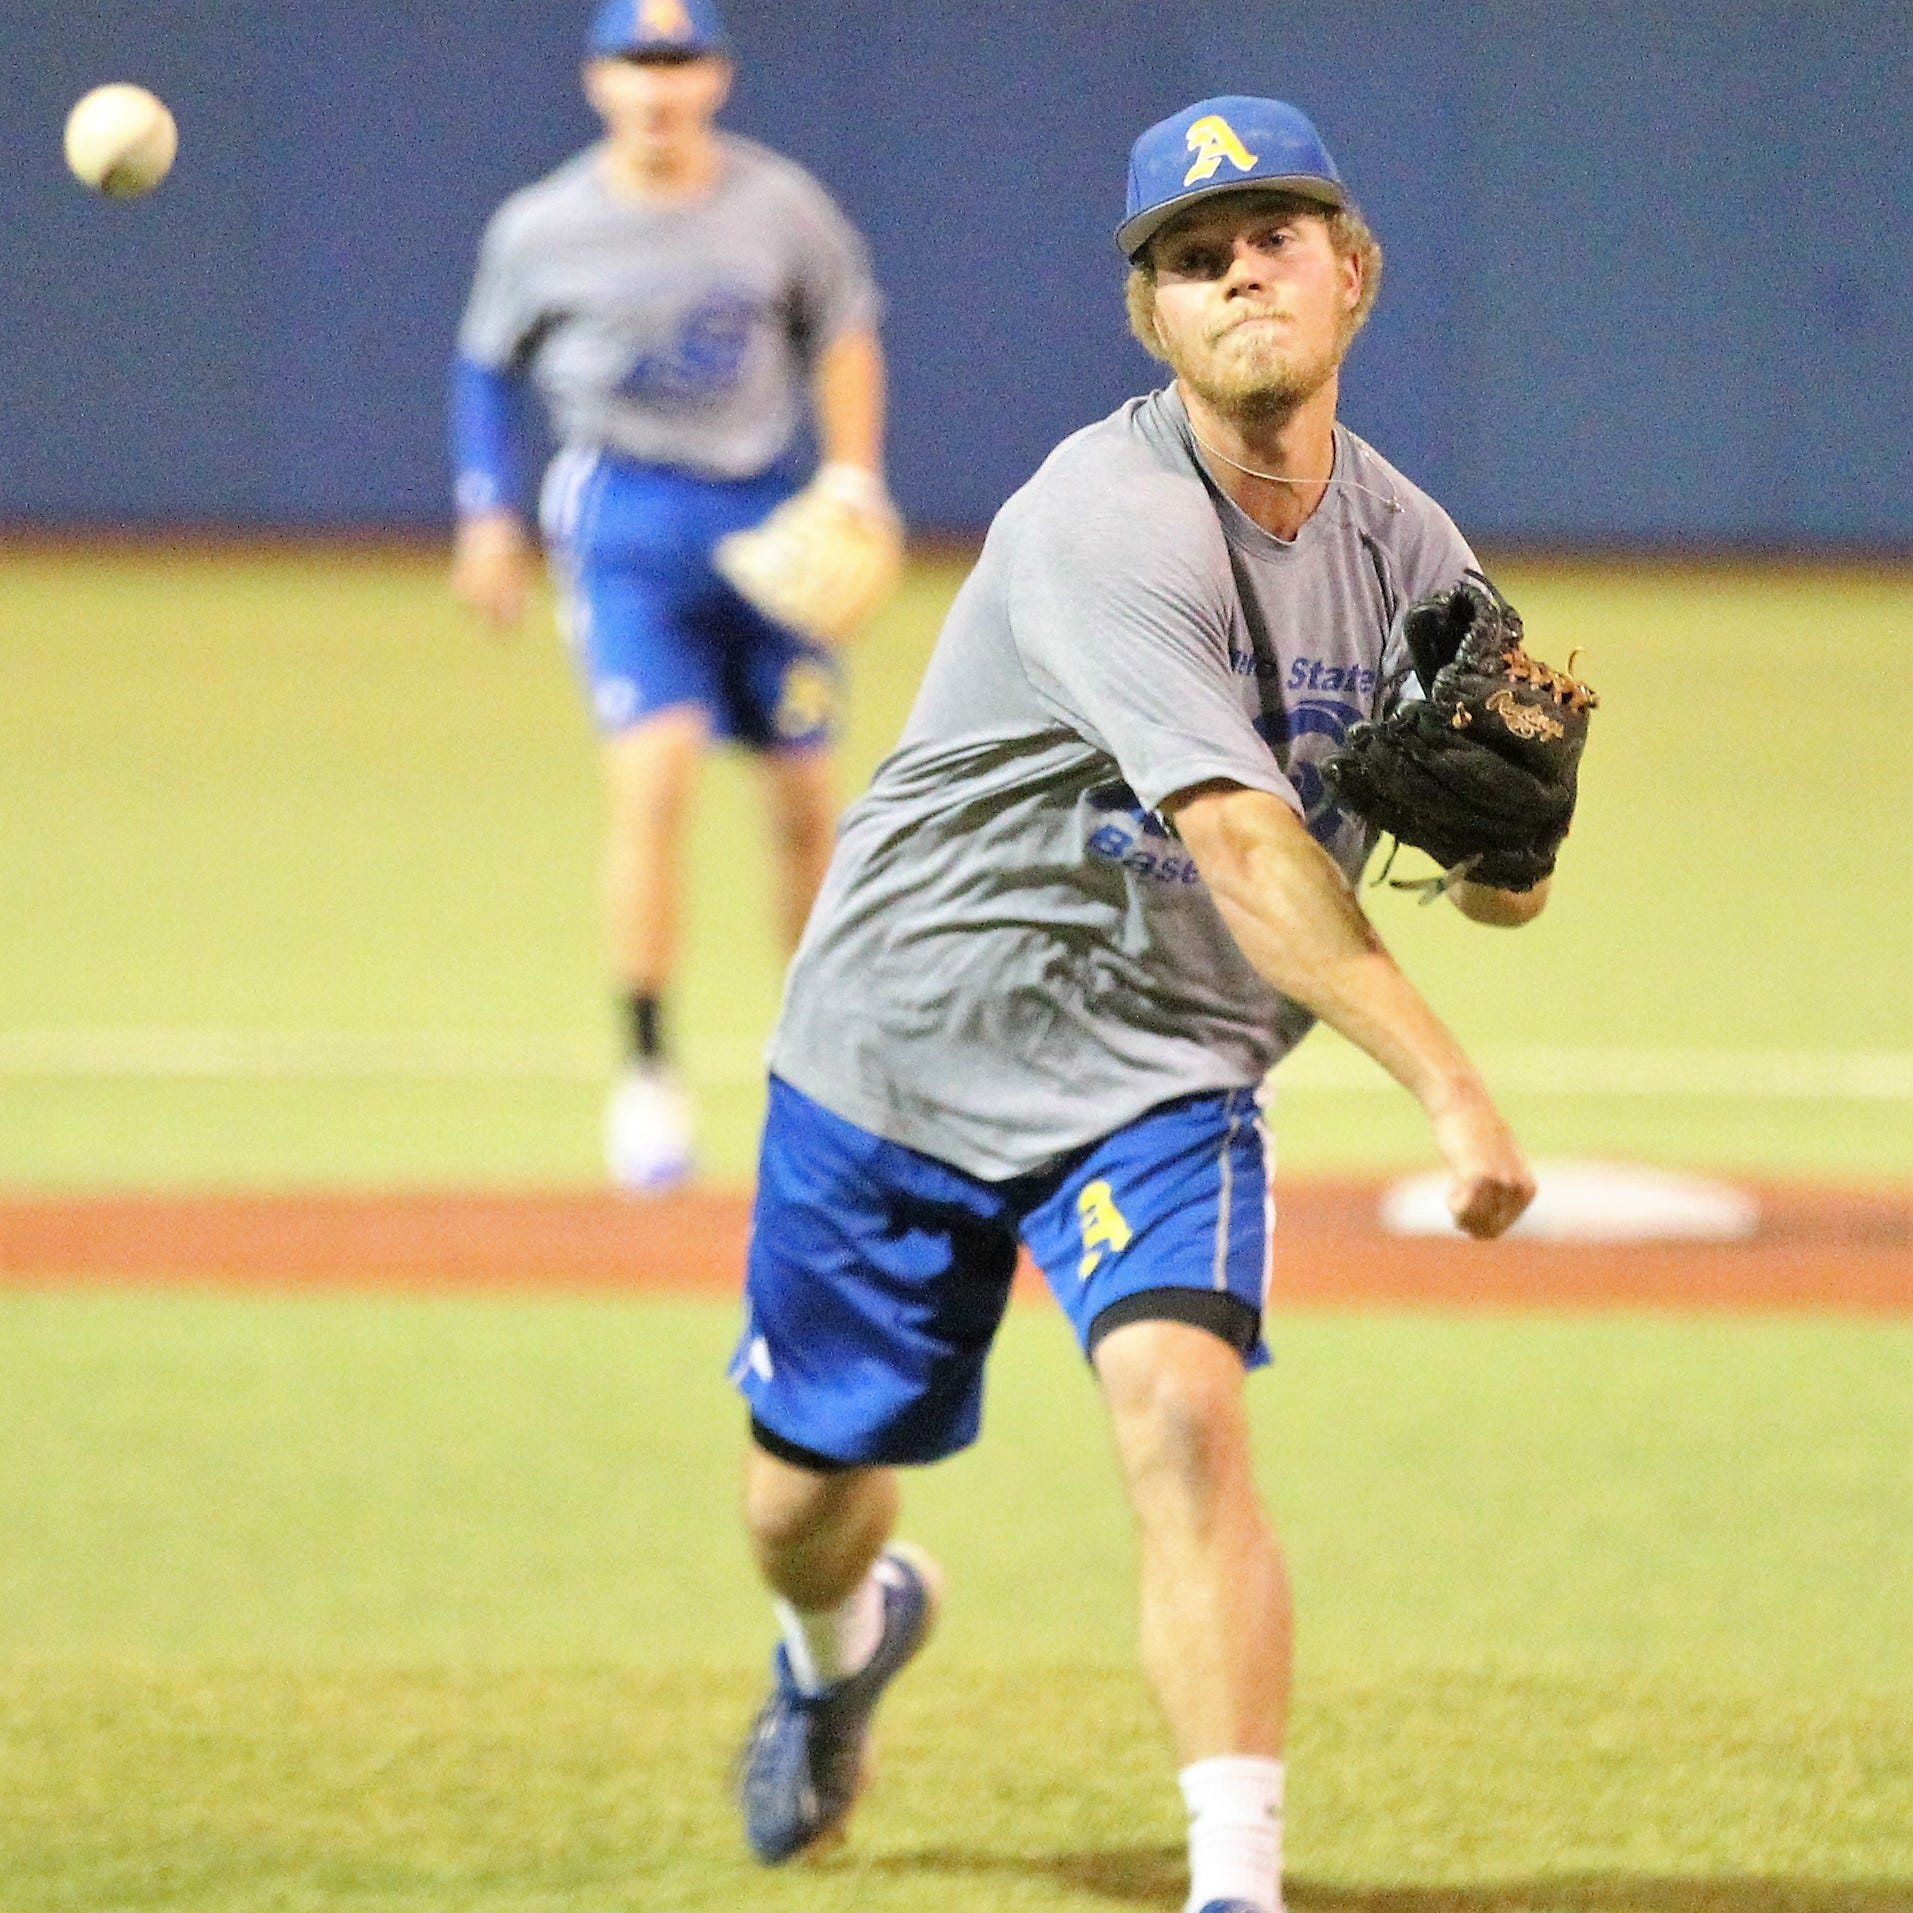 Angelo State pitcher Josh Barnett hoping to lead hometown team to World Series